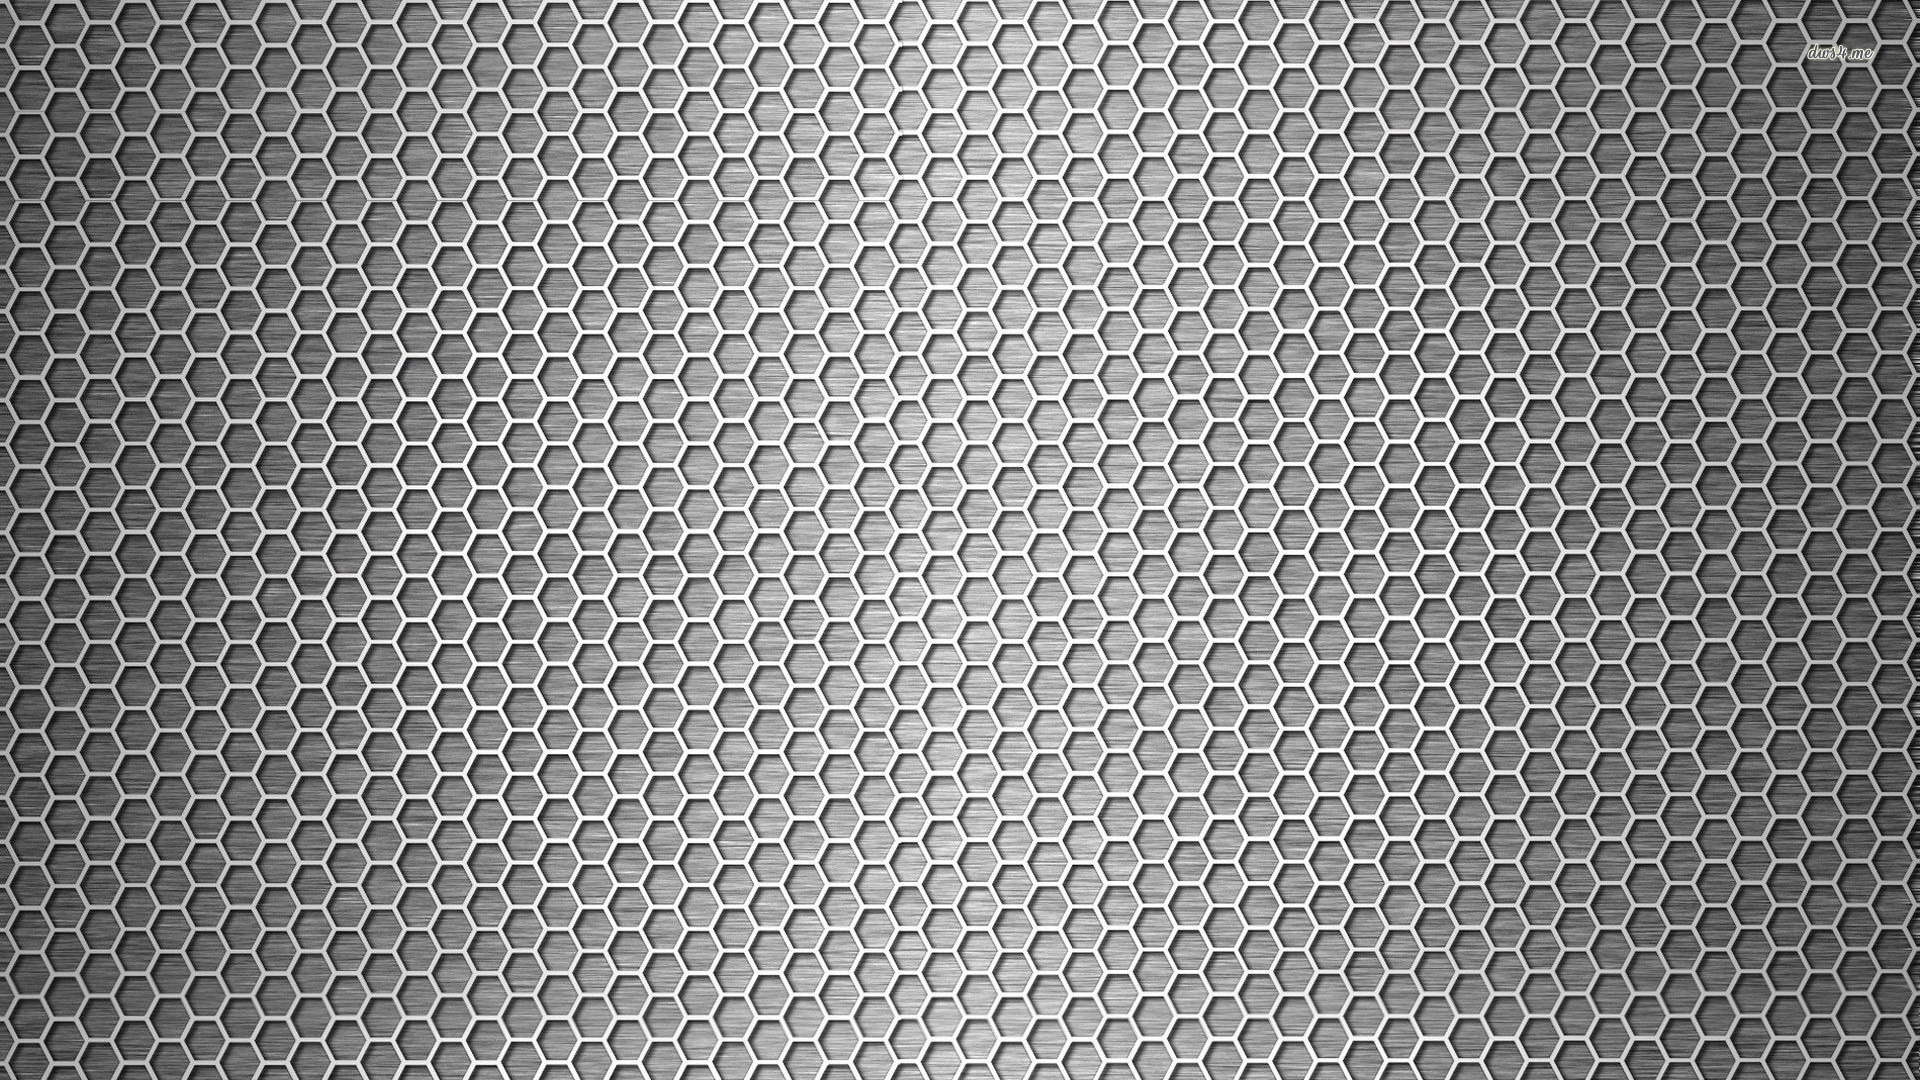 Free Download Metallic Honeycomb Pattern Wallpaper Abstract Wallpapers 21872 1920x1080 For Your Desktop Mobile Tablet Explore 48 4k Carbon Fiber Wallpaper Carbon Fiber Wallpaper For Walls Carbon Fiber Iphone